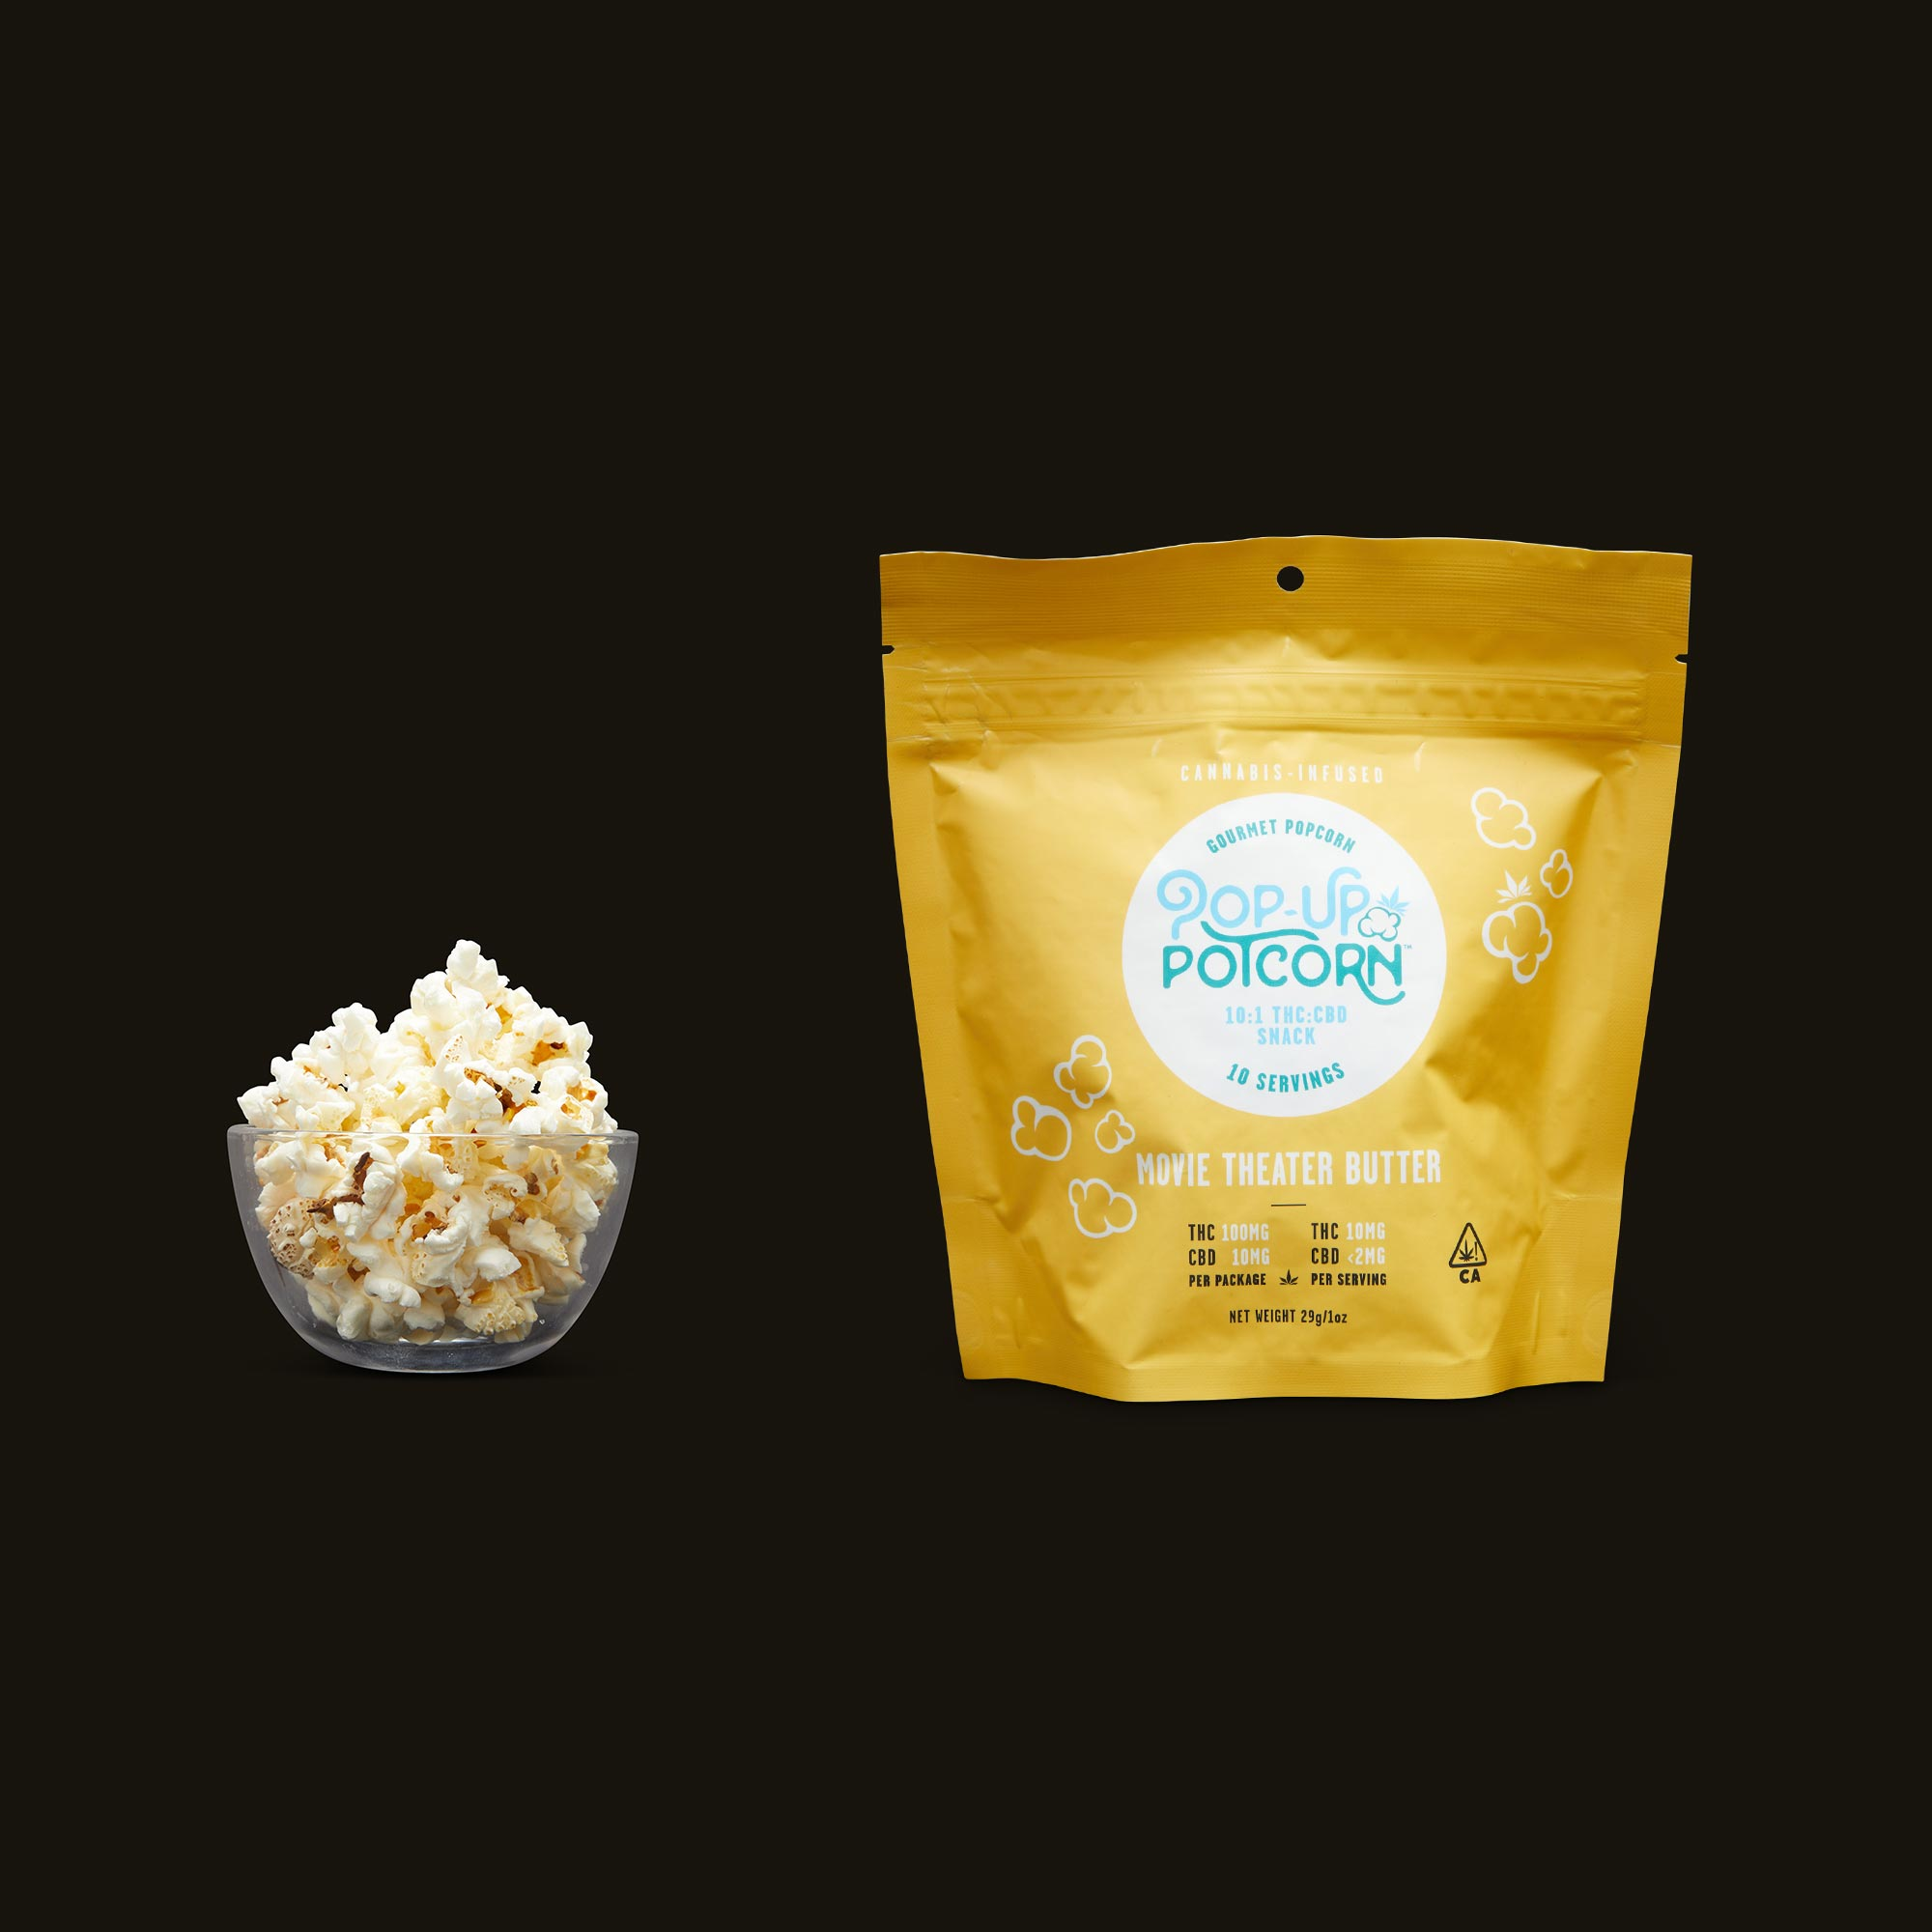 Pop-Up Potcorn Movie Theater Butter Popcorn 10:1 - 10 Servings